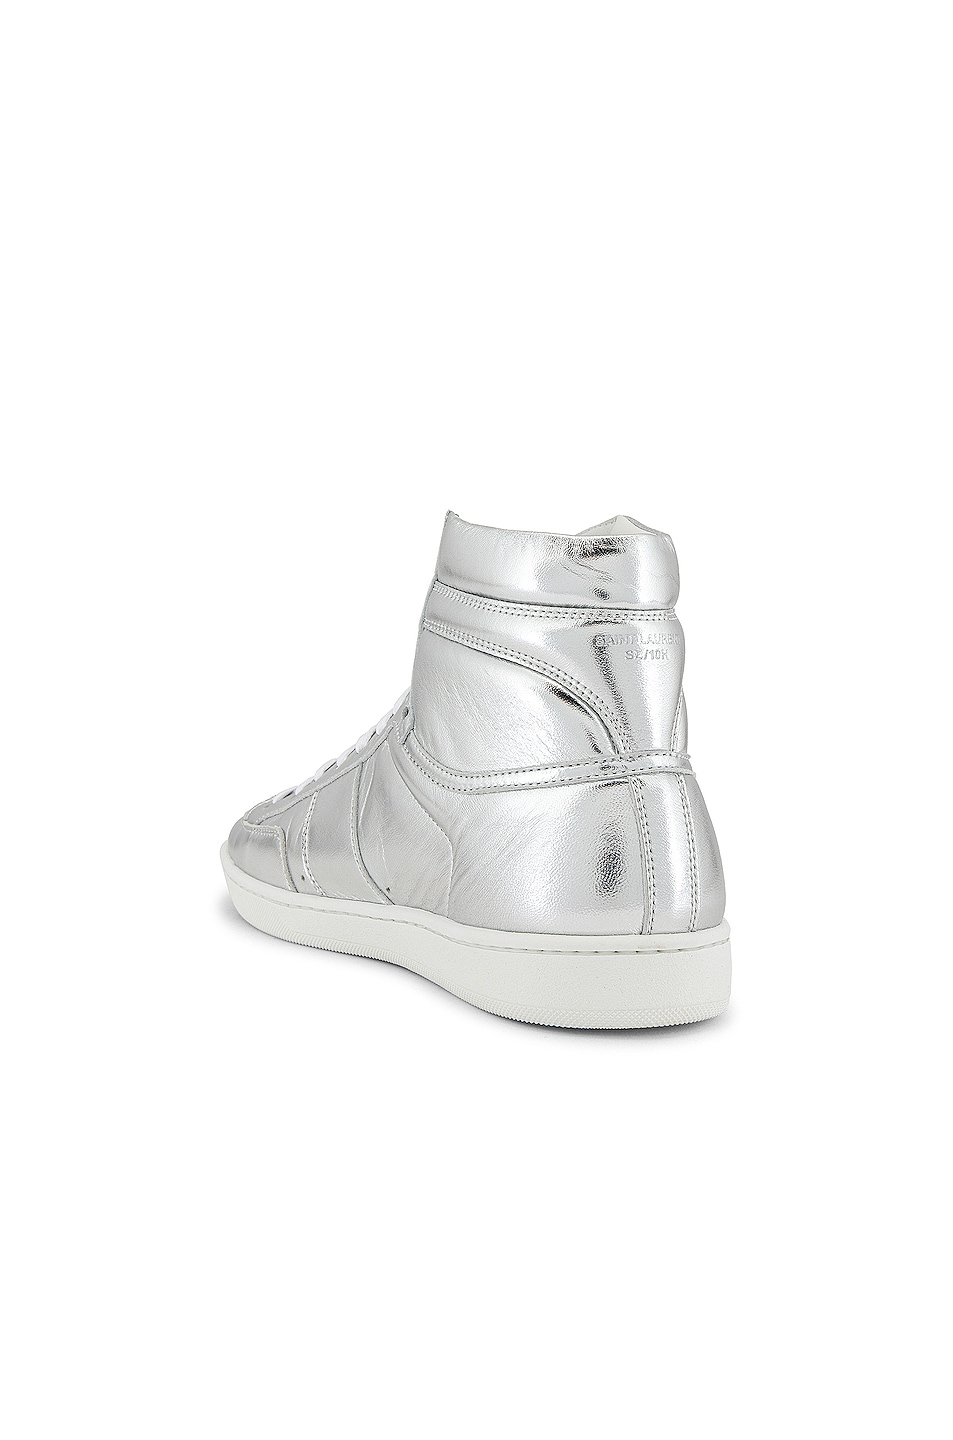 Image 3 of Saint Laurent Leather Up Sneaker in Silver